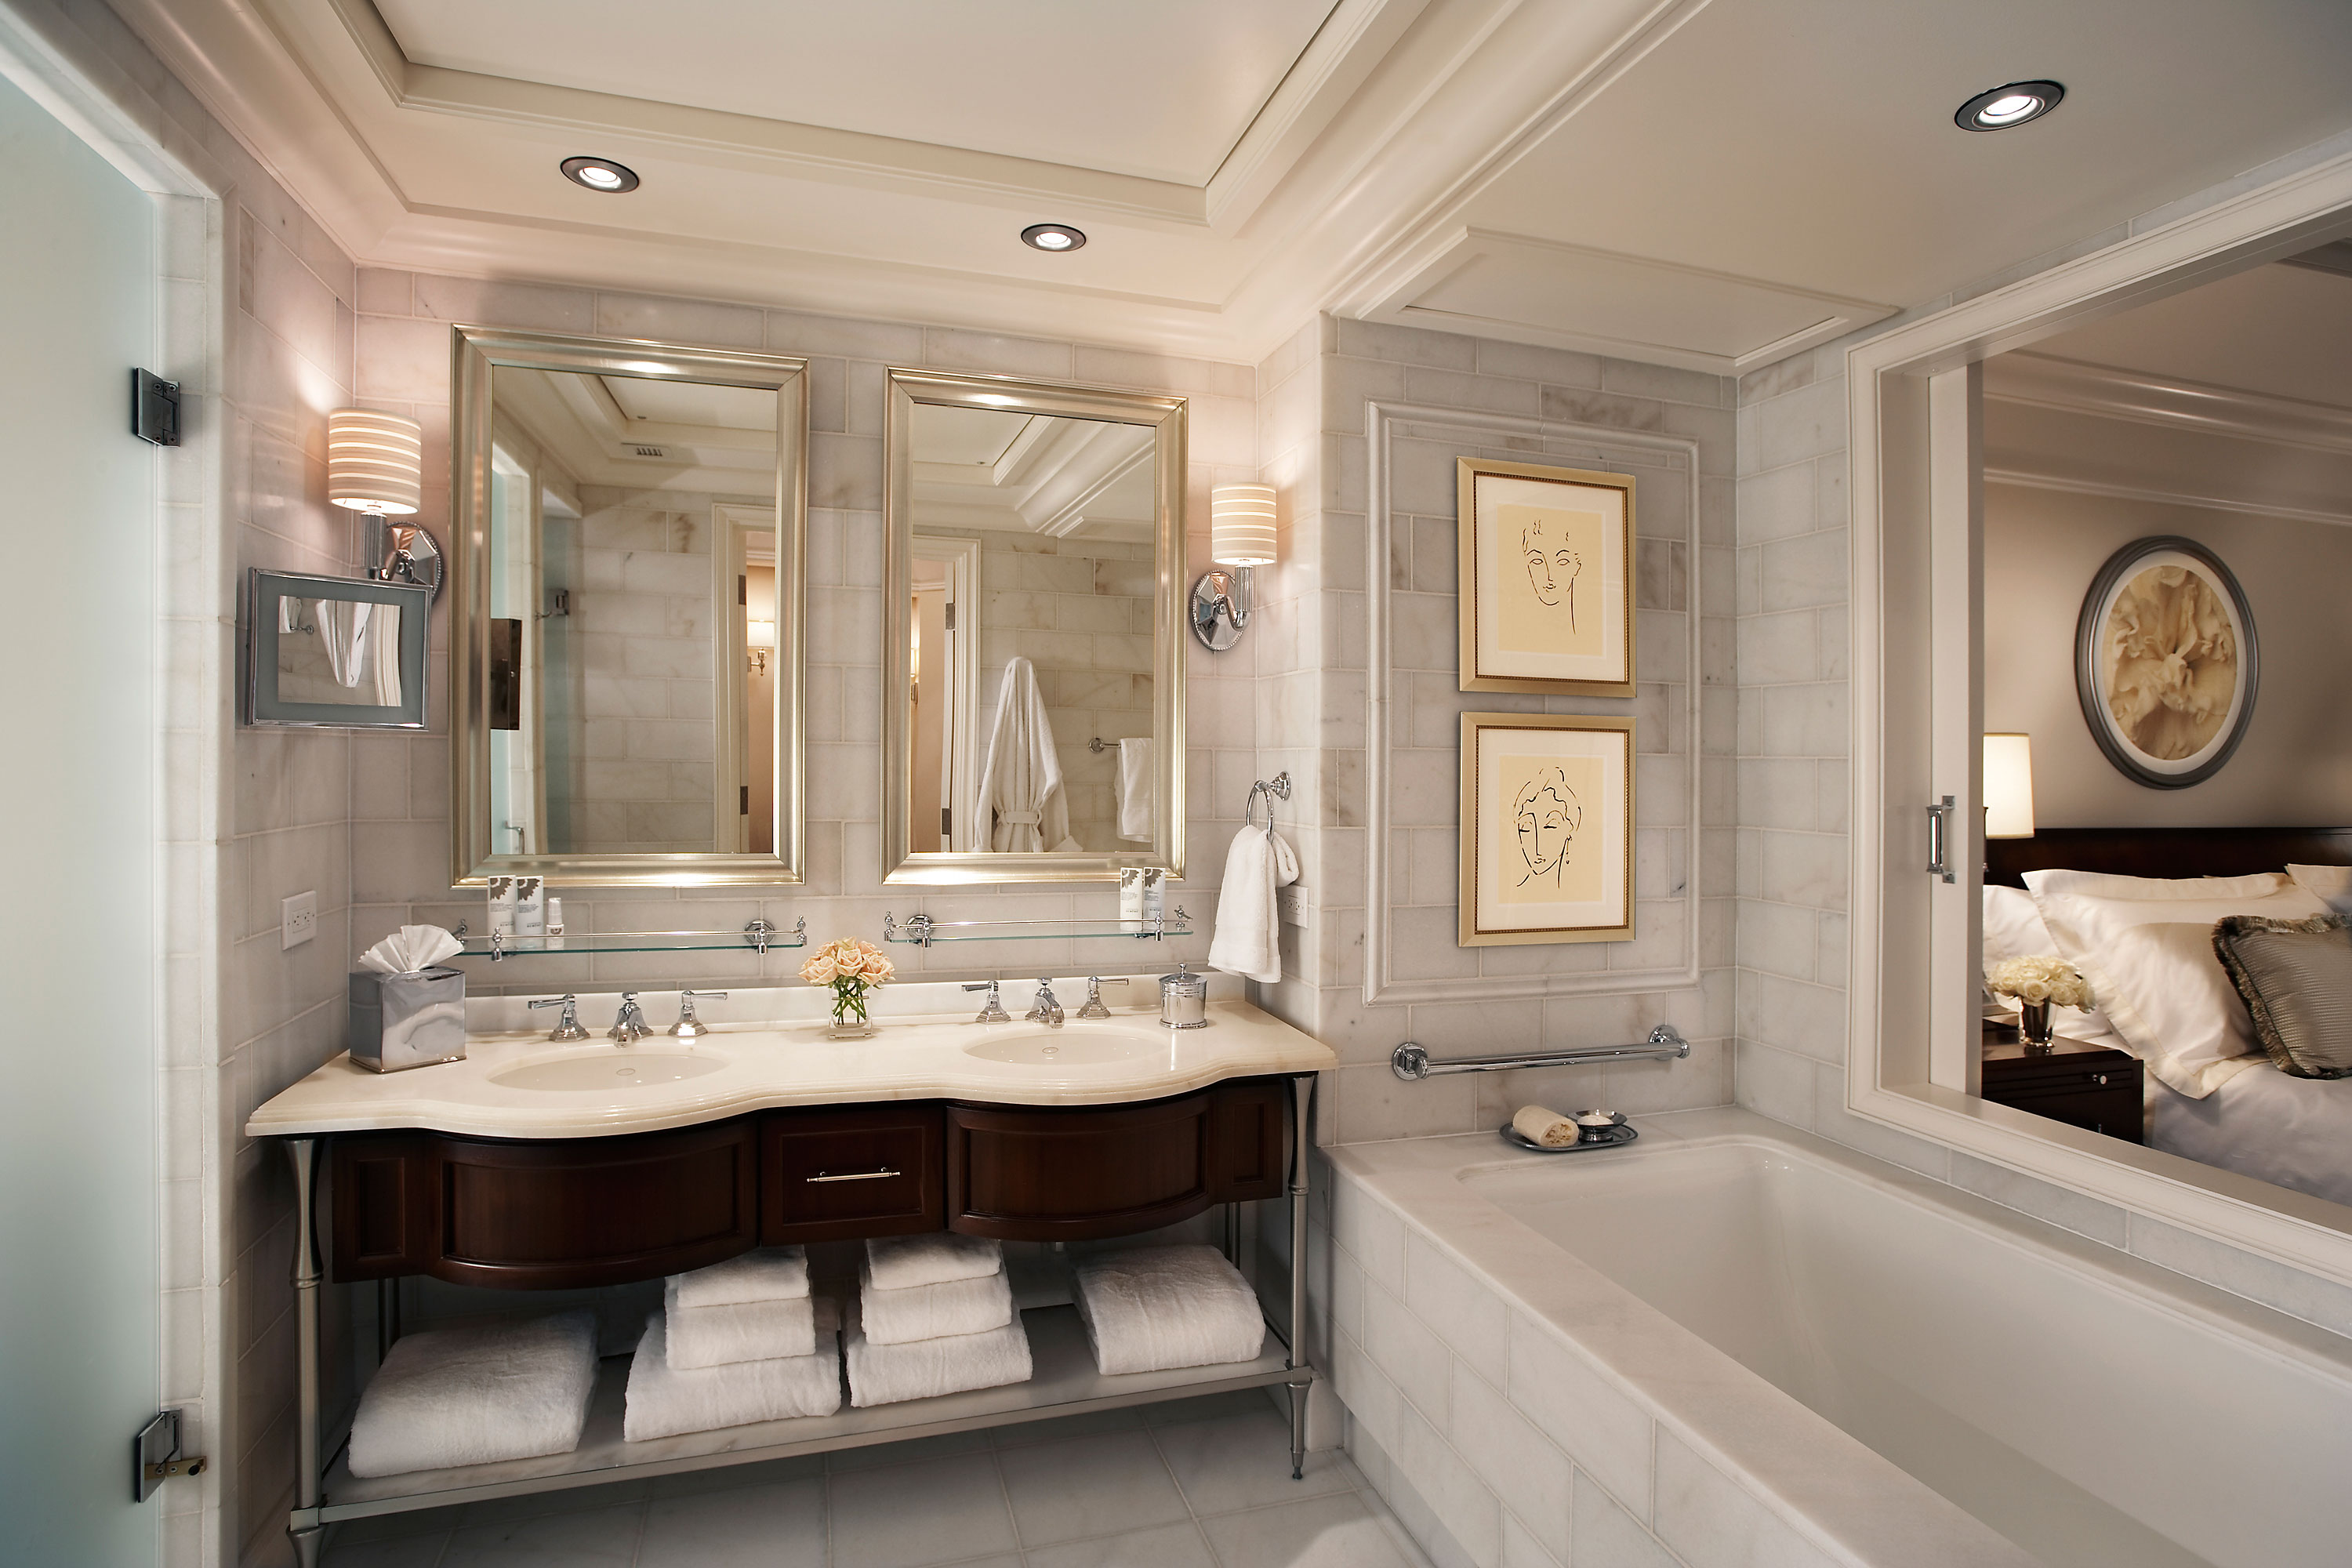 12 Luxurious Bathroom Design Ideas: Edge Treatments And Profiles